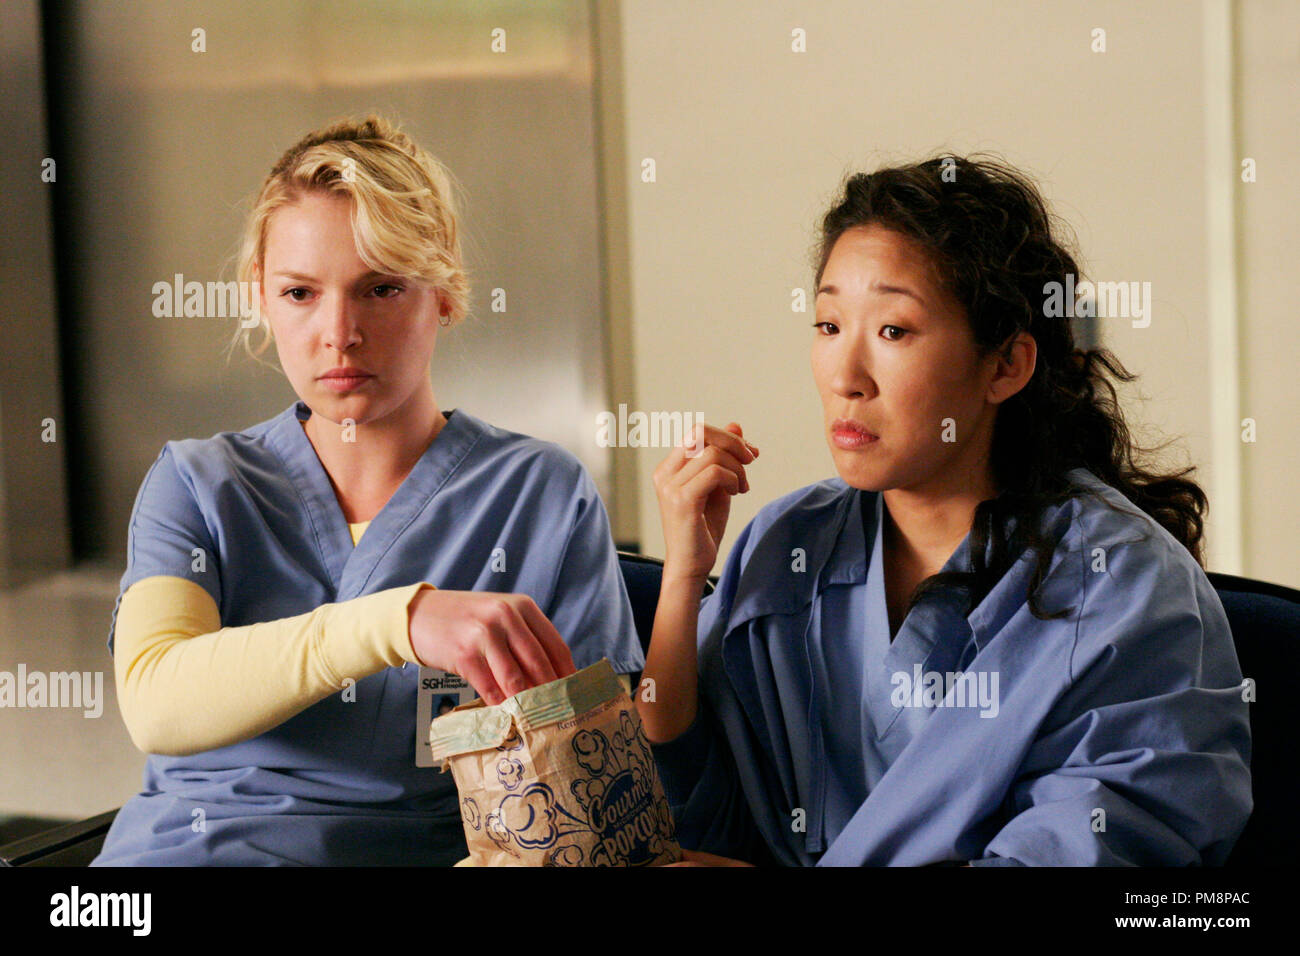 Katherine Heigl And Sandra Oh Stock Photos & Katherine Heigl And ...